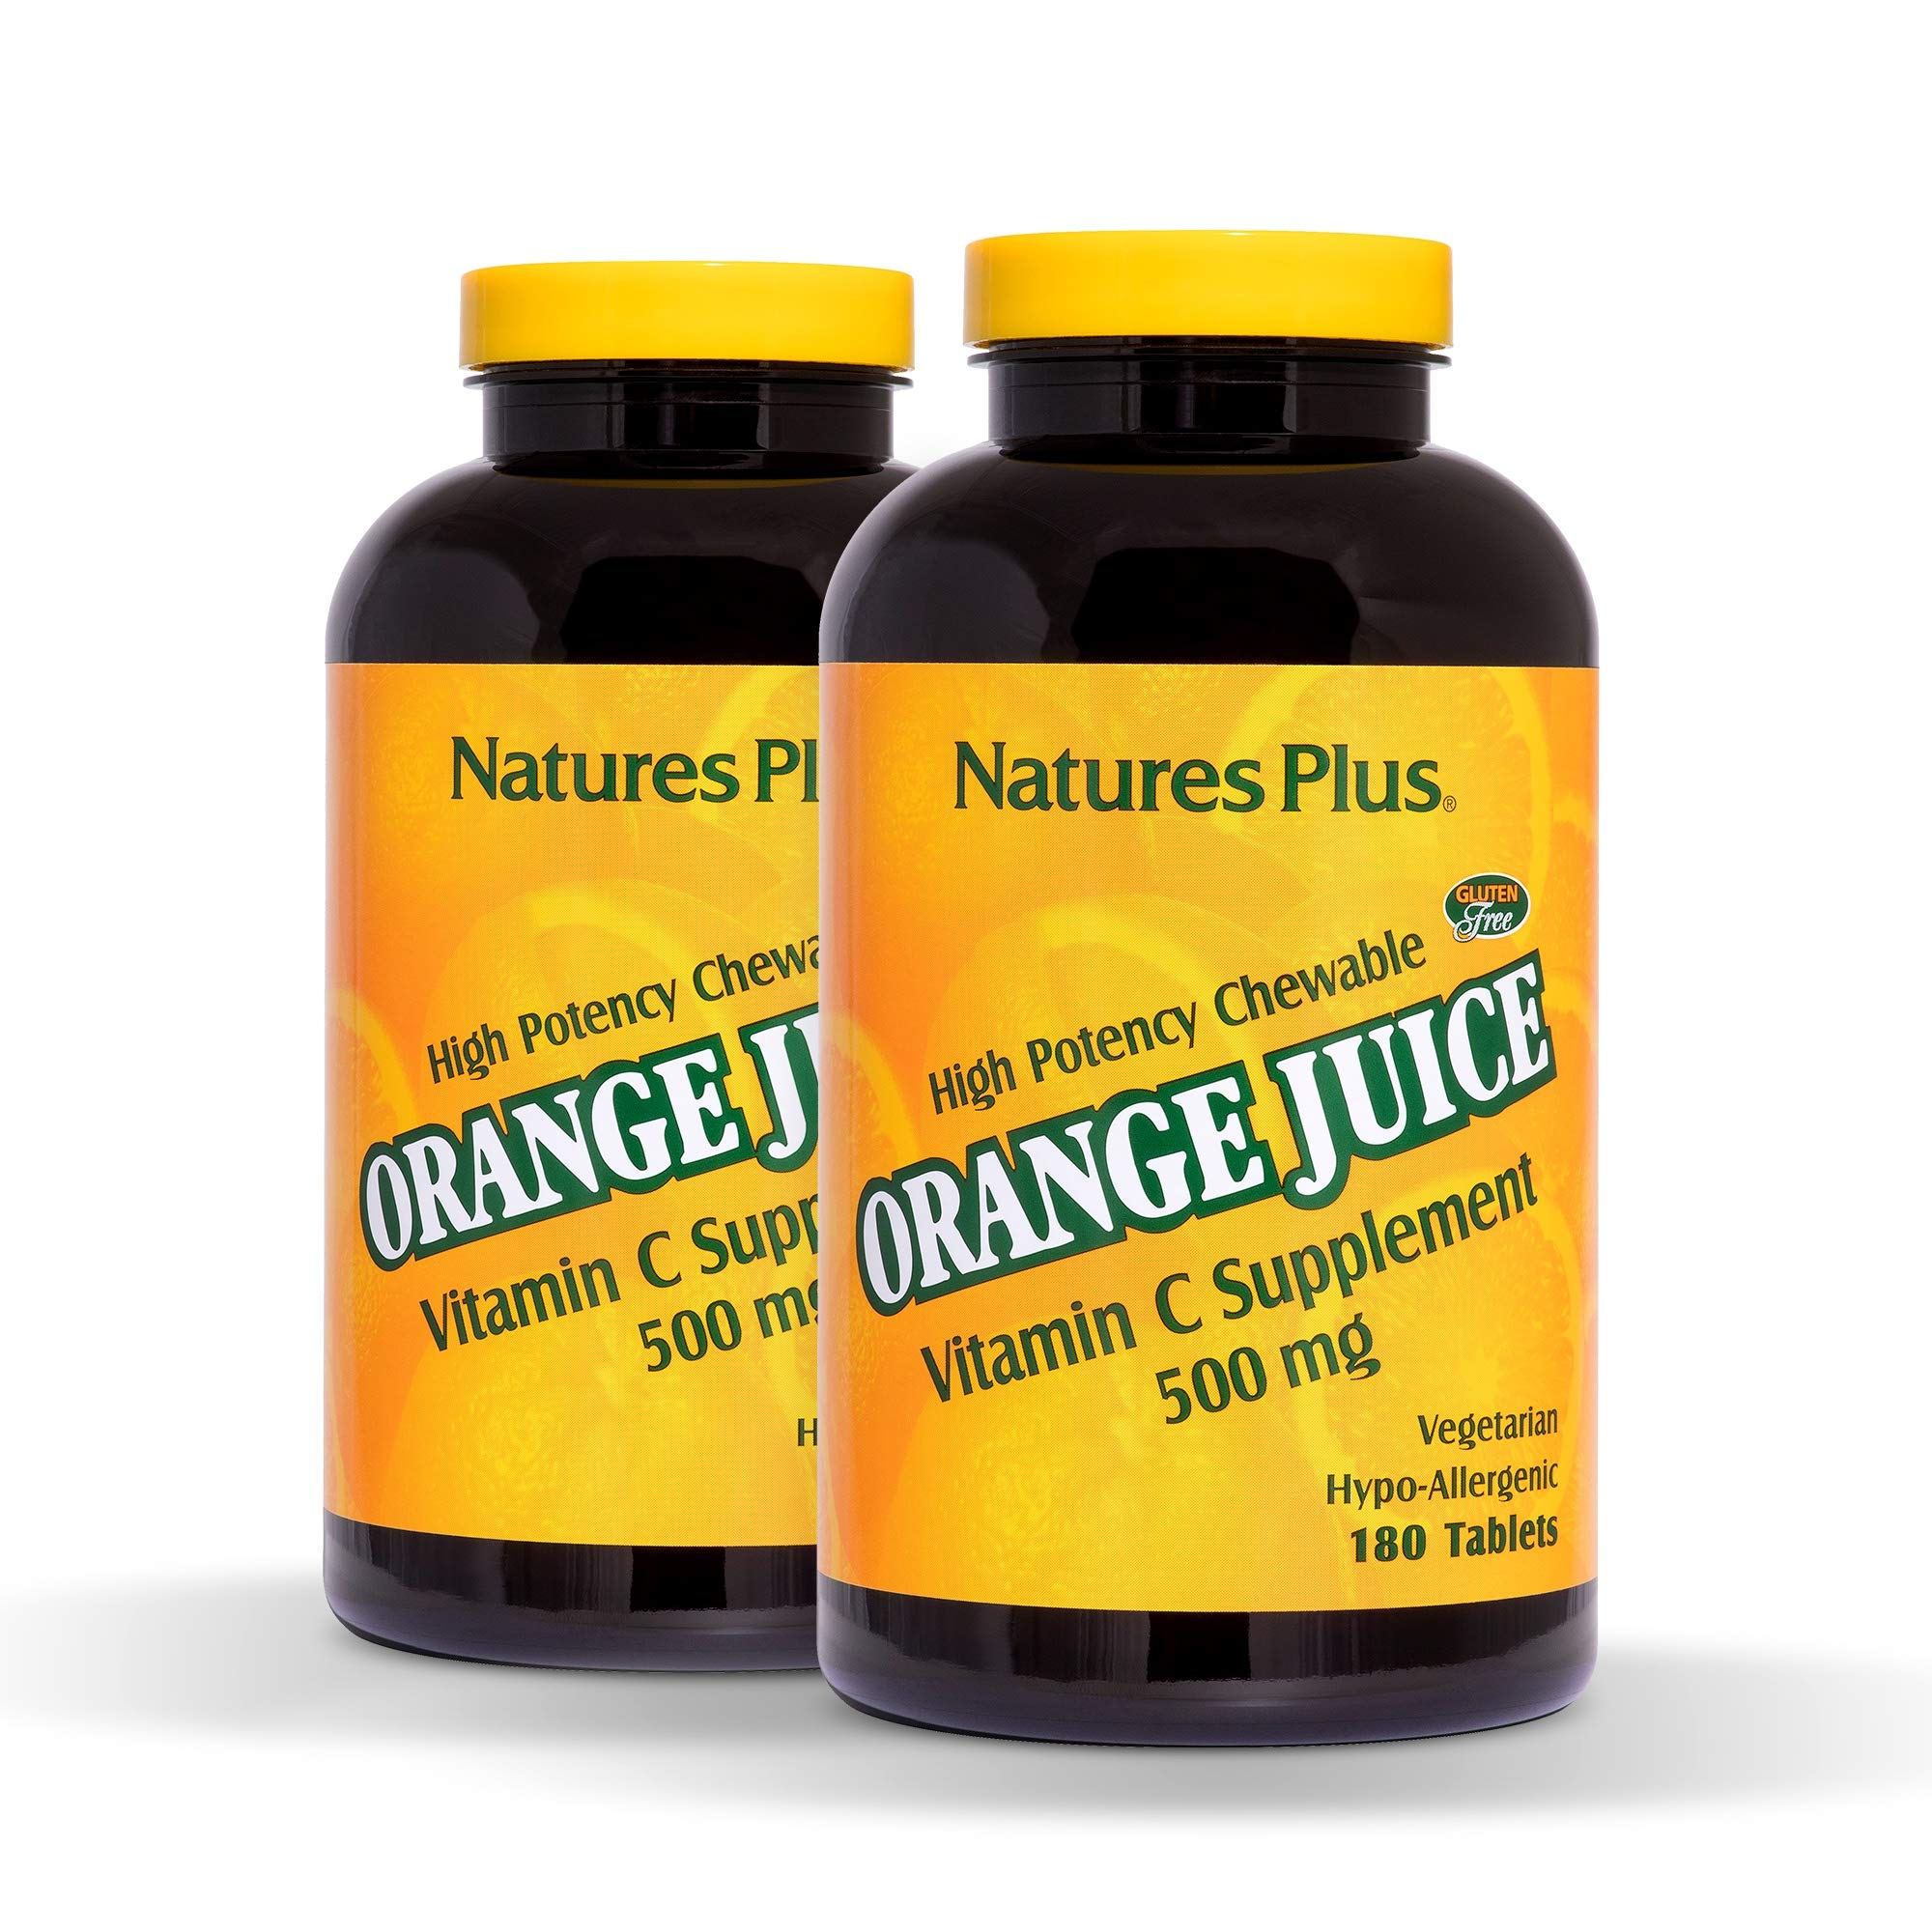 NaturesPlus Orange Juice Chewable Vitamin C (2 Pack)- 500 mg, 180 Tablets - High Potency Immune Support Supplement, Antioxidant - Gentle On Stomach - Vegetarian, Gluten-Free - 360 Total Servings